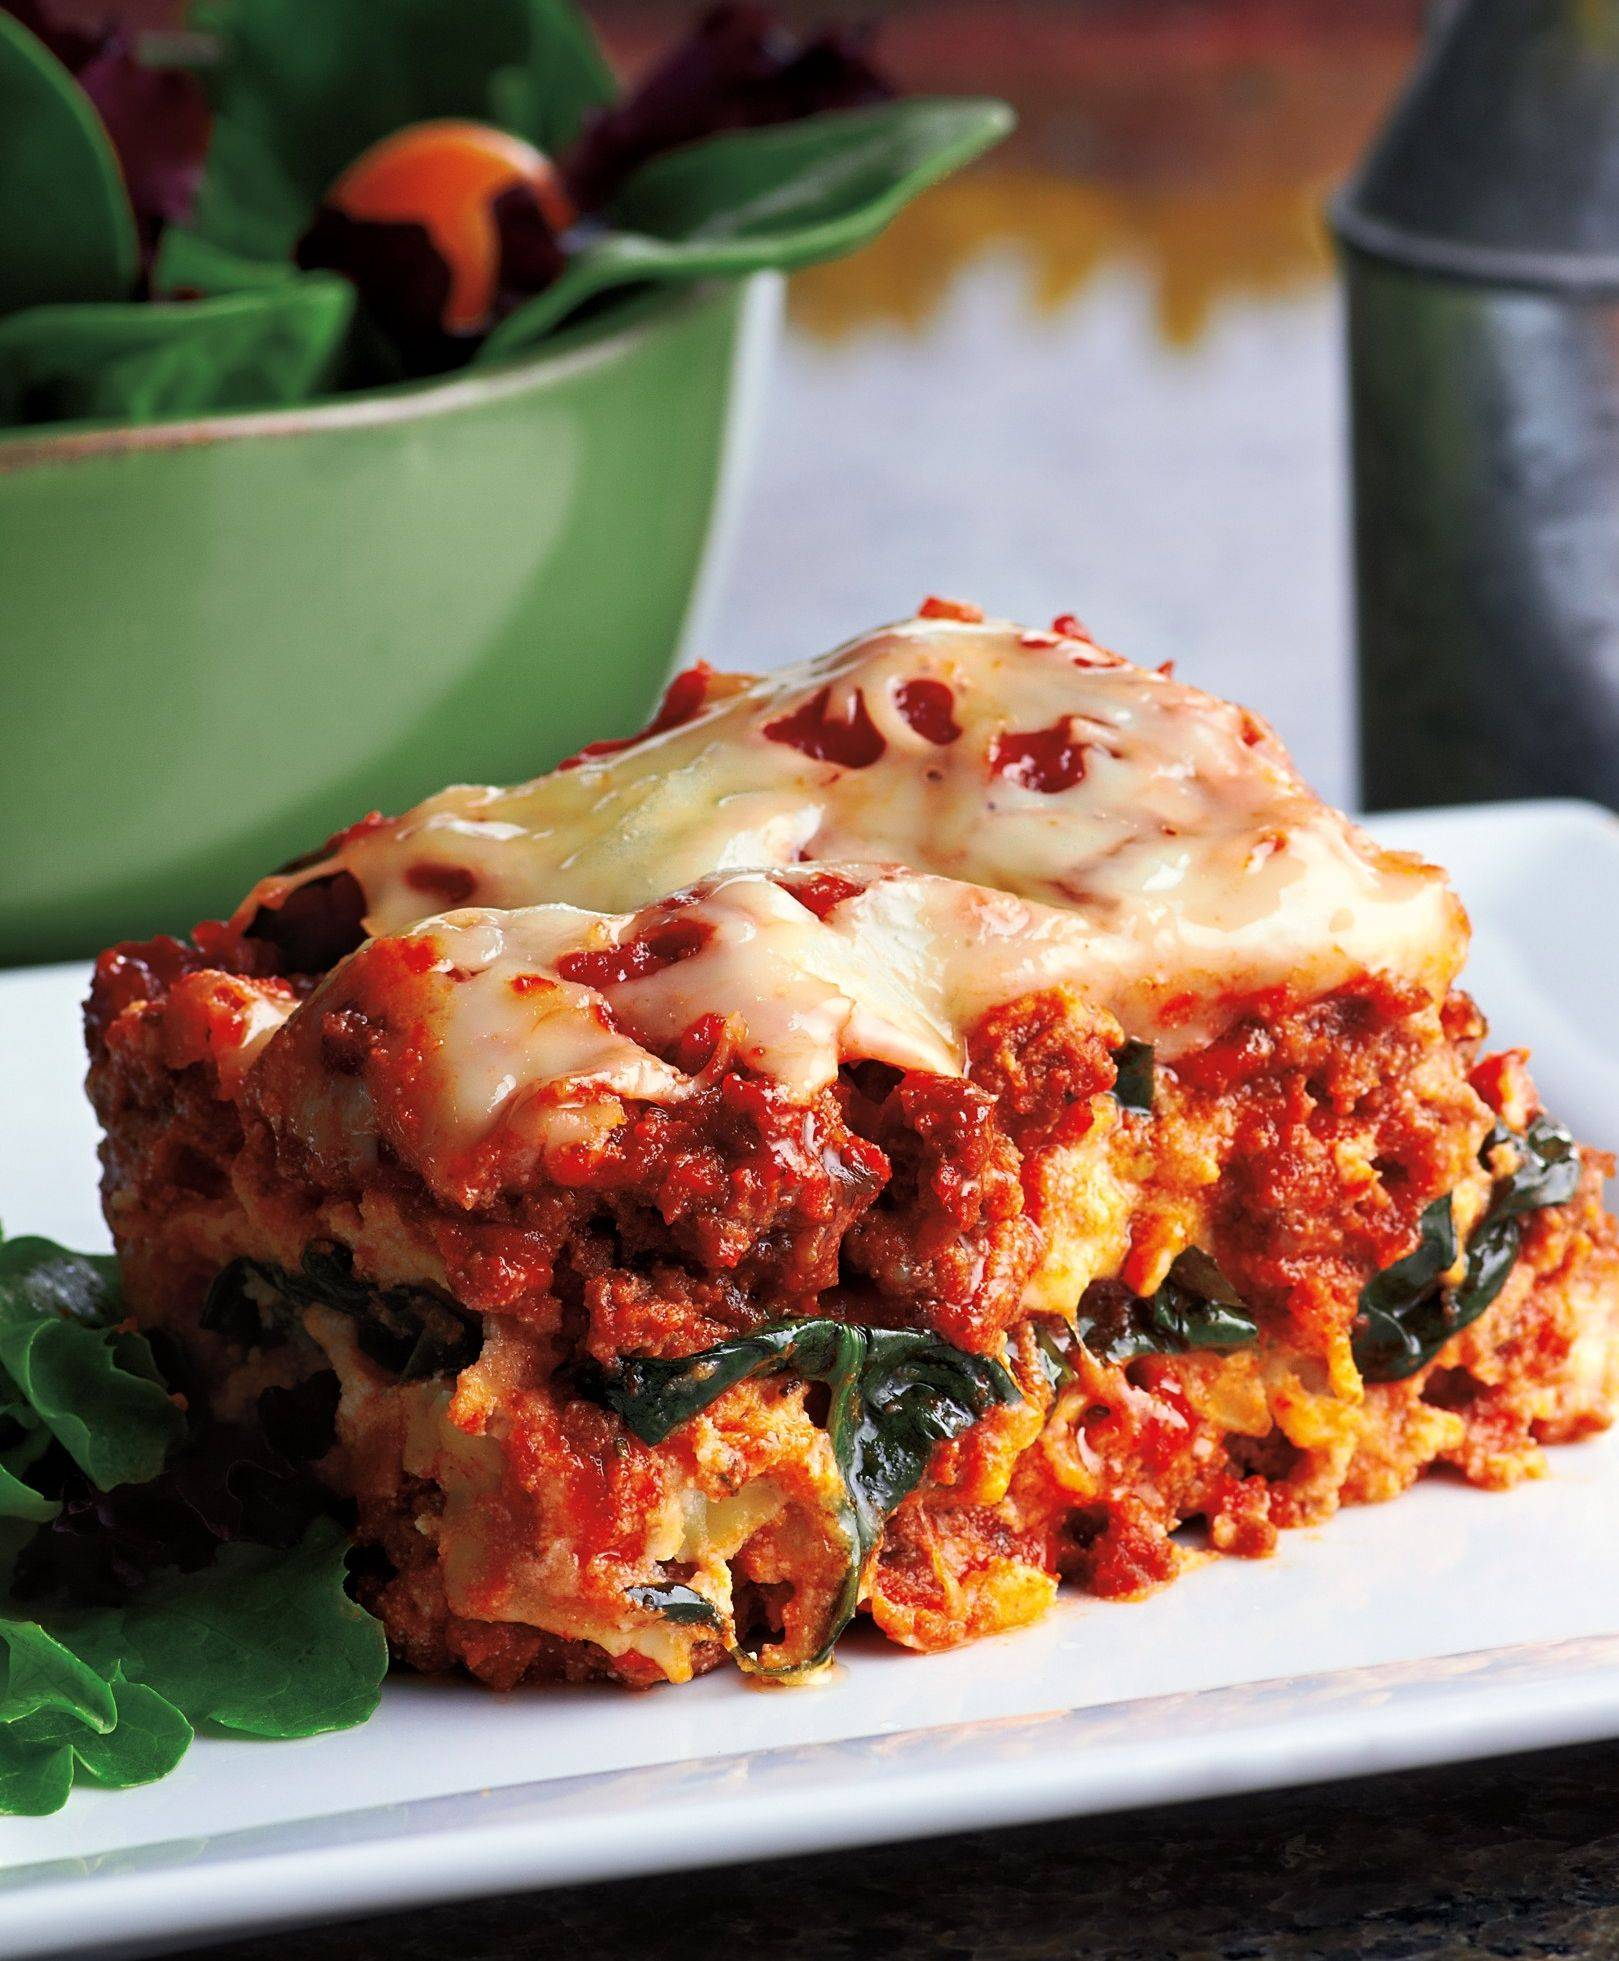 Crockin' Lasagna is a satisfying and delicious meal.